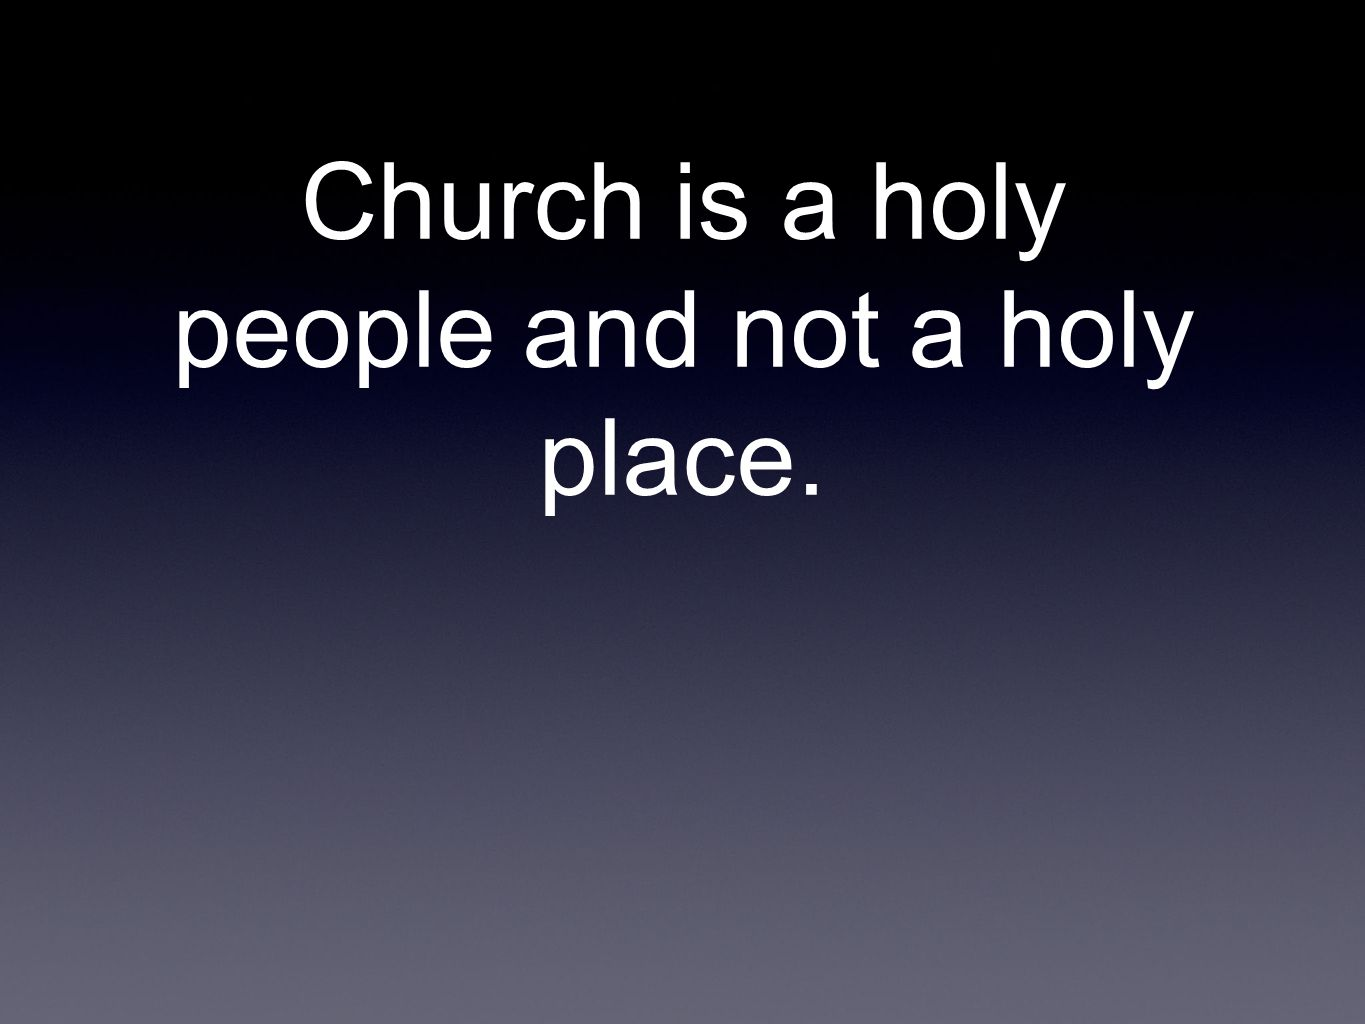 Church is a holy people and not a holy place.